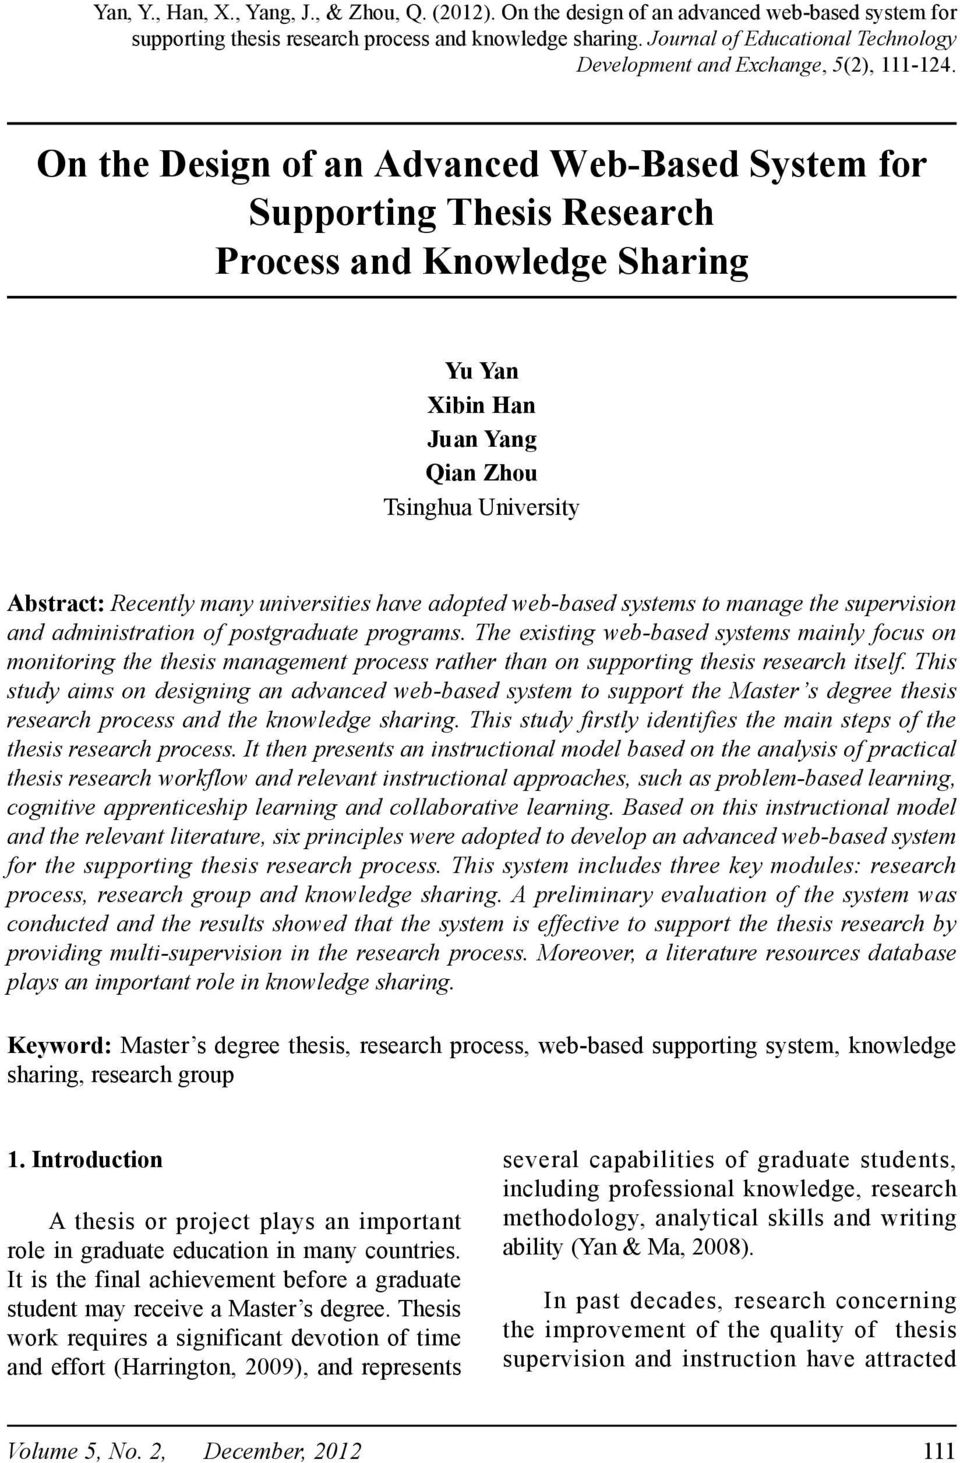 On the Design of an Advanced Web-Based System for Supporting Thesis Research Process and Knowledge Sharing Yu Yan Xibin Han Juan Yang Qian Zhou Tsinghua University Abstract: Recently many